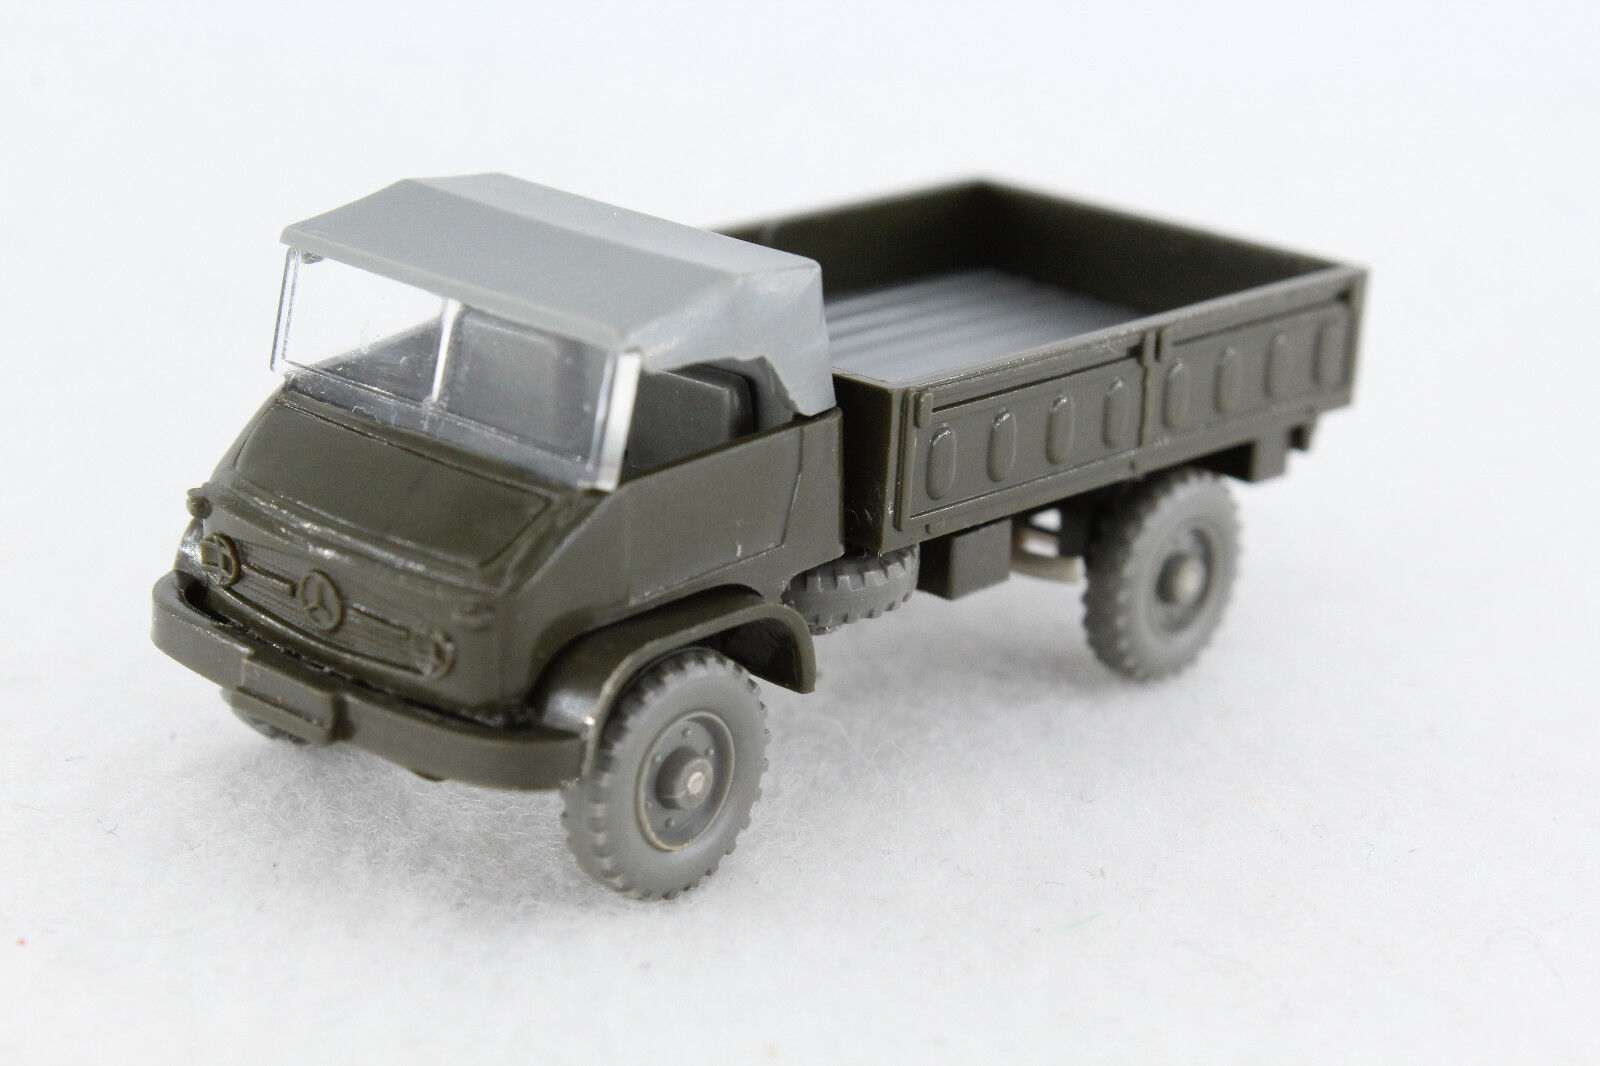 A.S.S Wiking âge Camion MB Unimog S Militaire Vert Olive 1963 GK 363 2 CS 487 2 1 WTOP